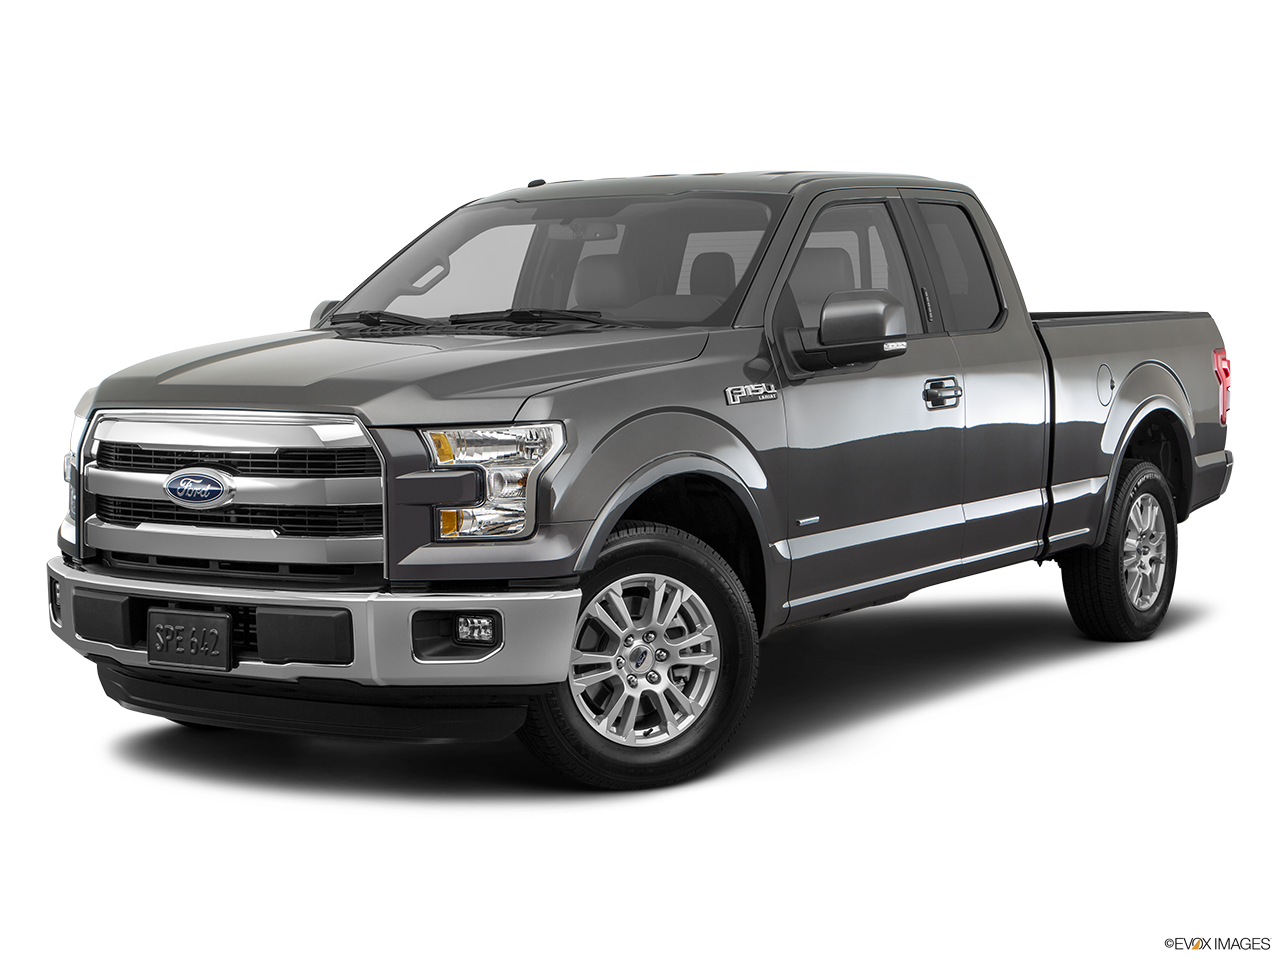 Test Drive A 2016 Ford F-150 at Huntington Beach Ford in Huntington Beach